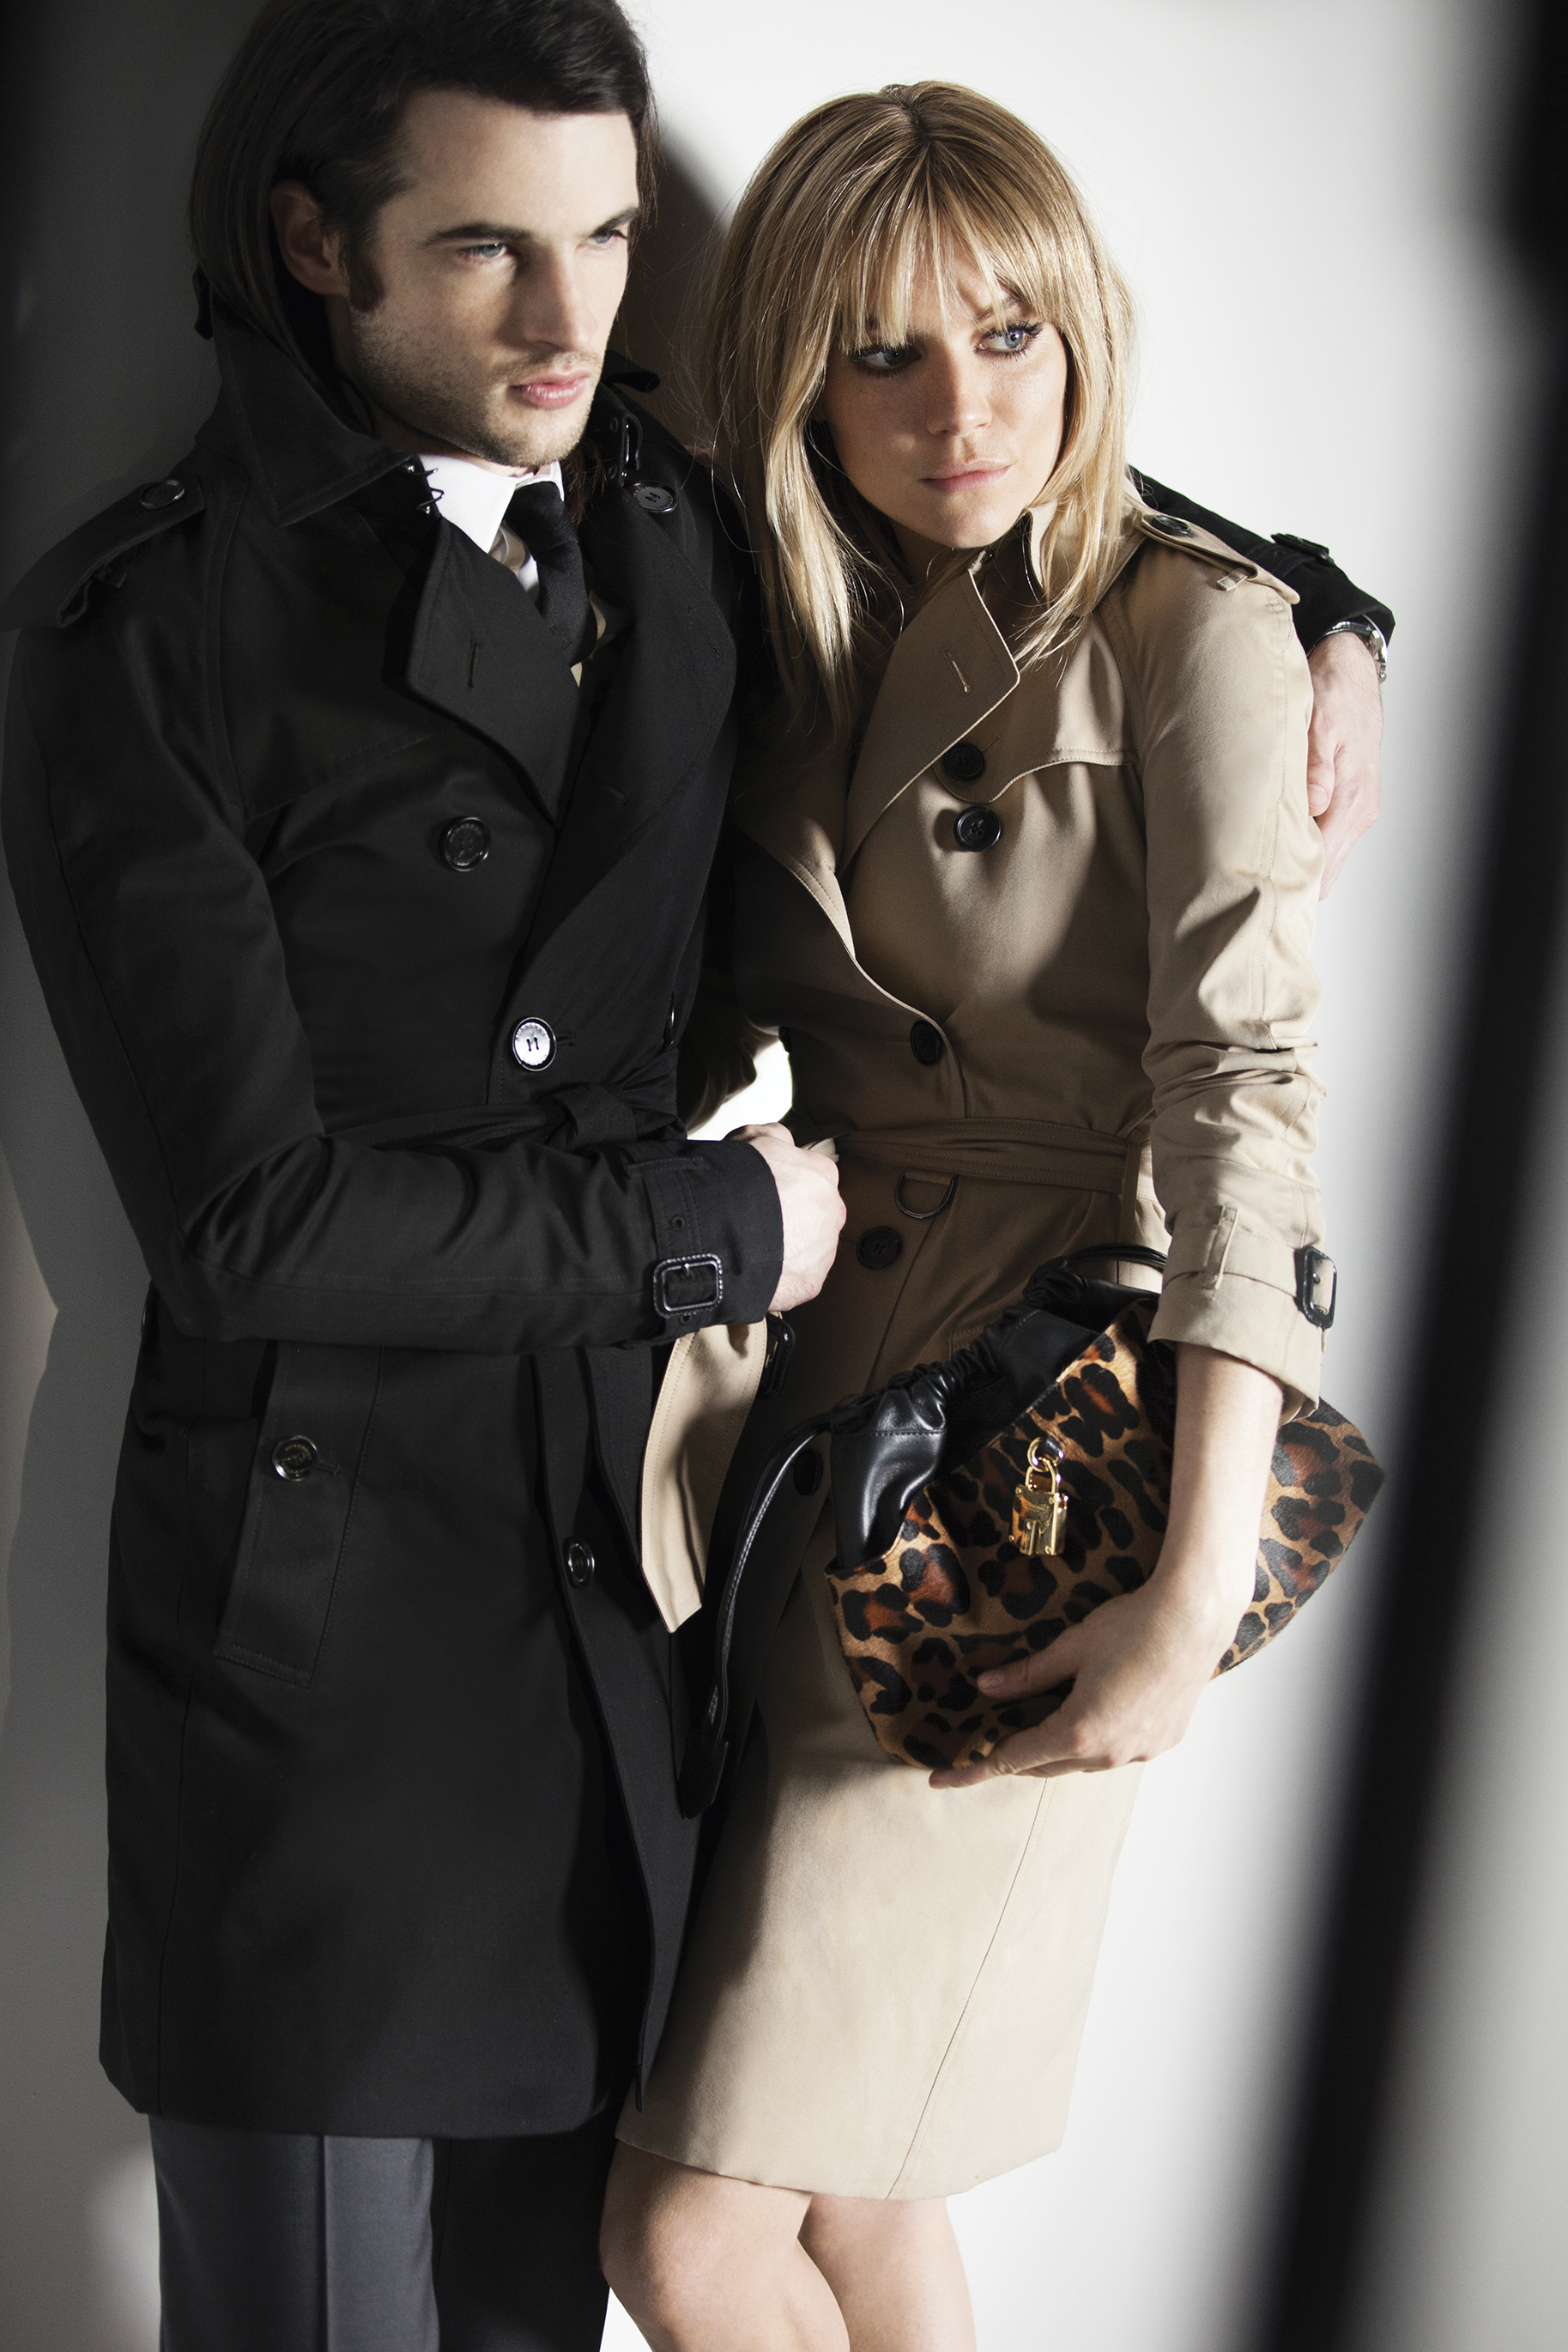 Sienna Miller and Tom Sturridge behind the scenes at the Burberry Autumn_Winter 2013 campaig_001